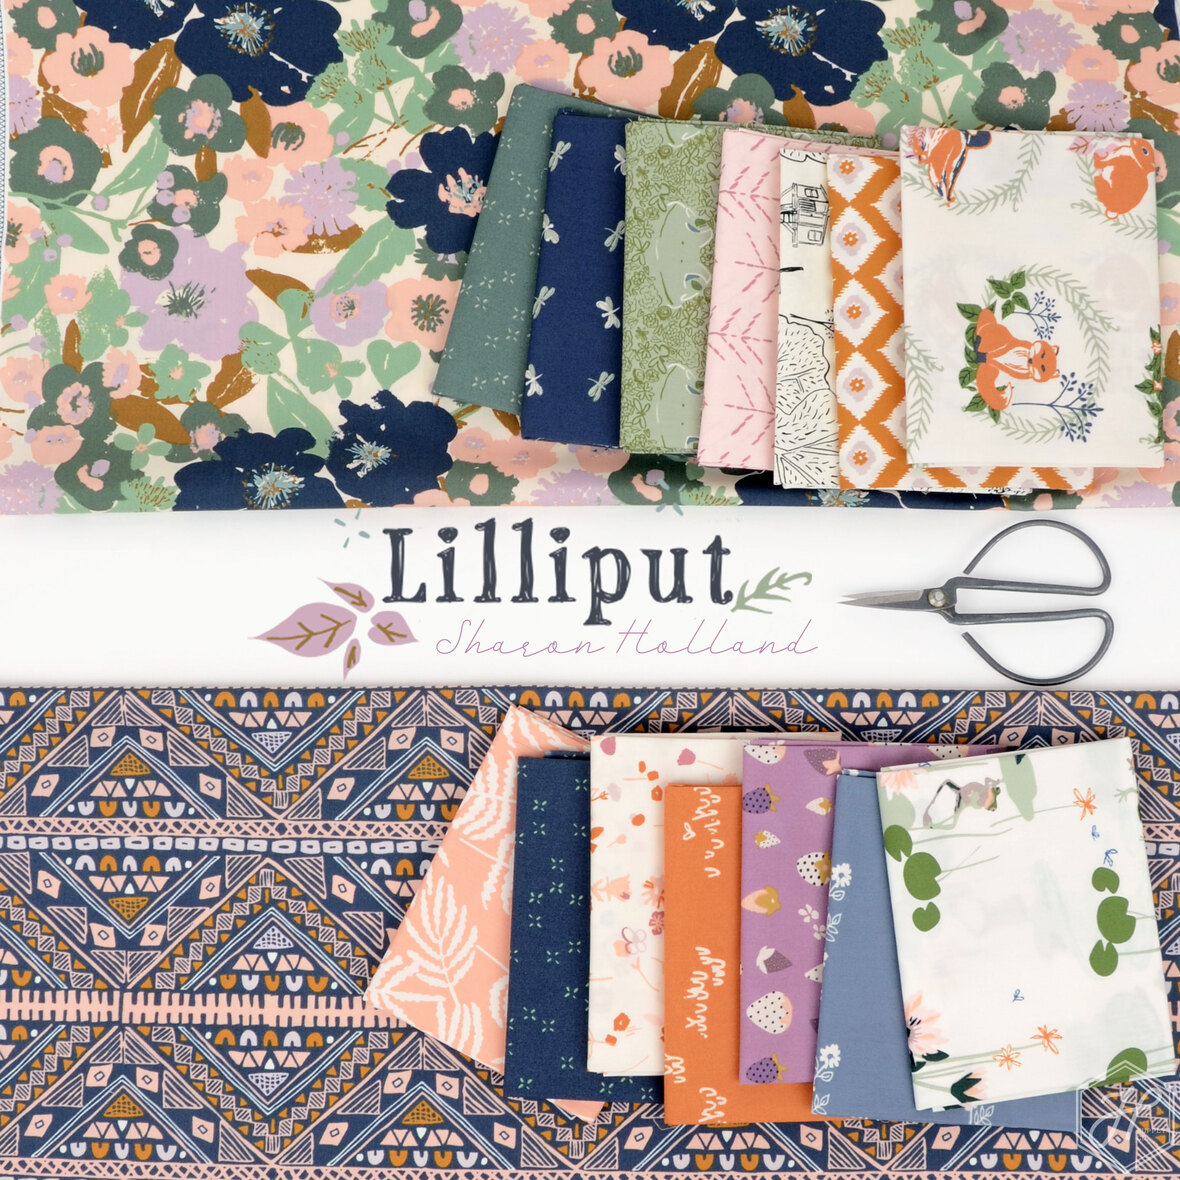 Lilliput-Fabric-Sharon-Holland-for-Hawthorne-Supply-Co